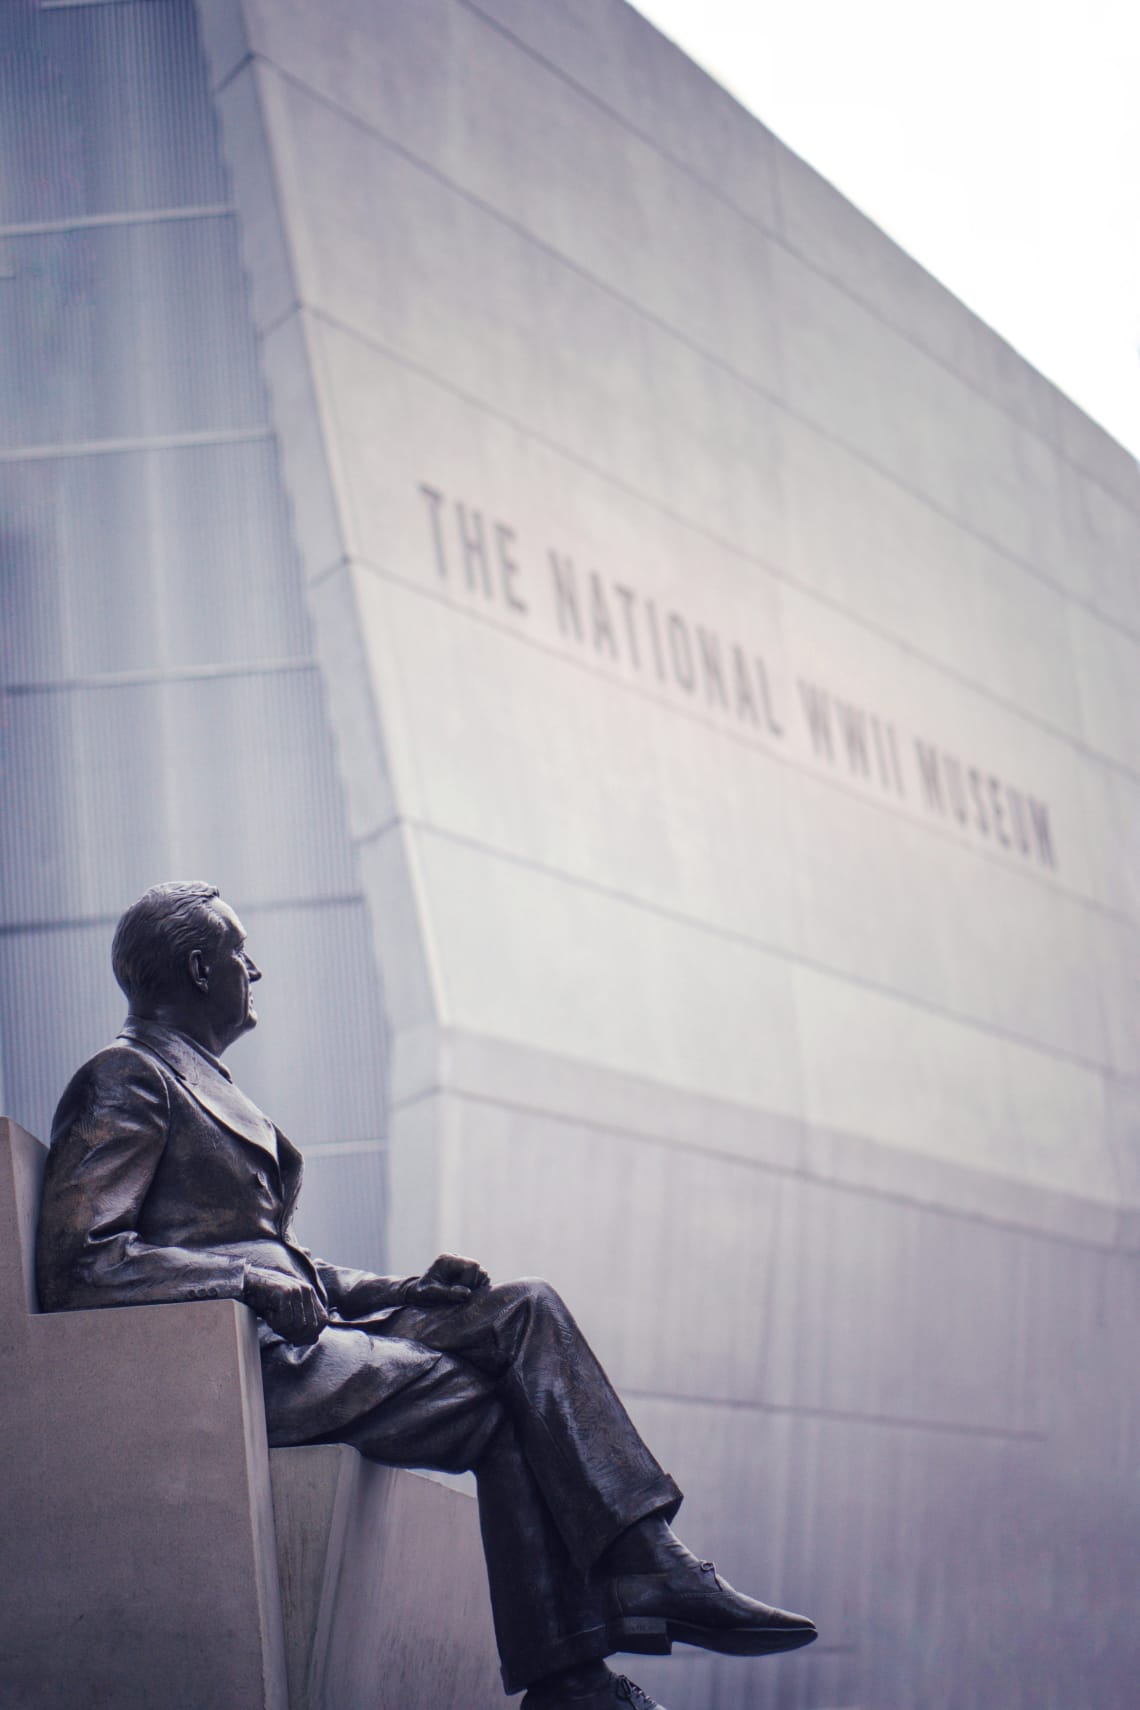 Things to do in New Orleans: visit the National WWII Museum